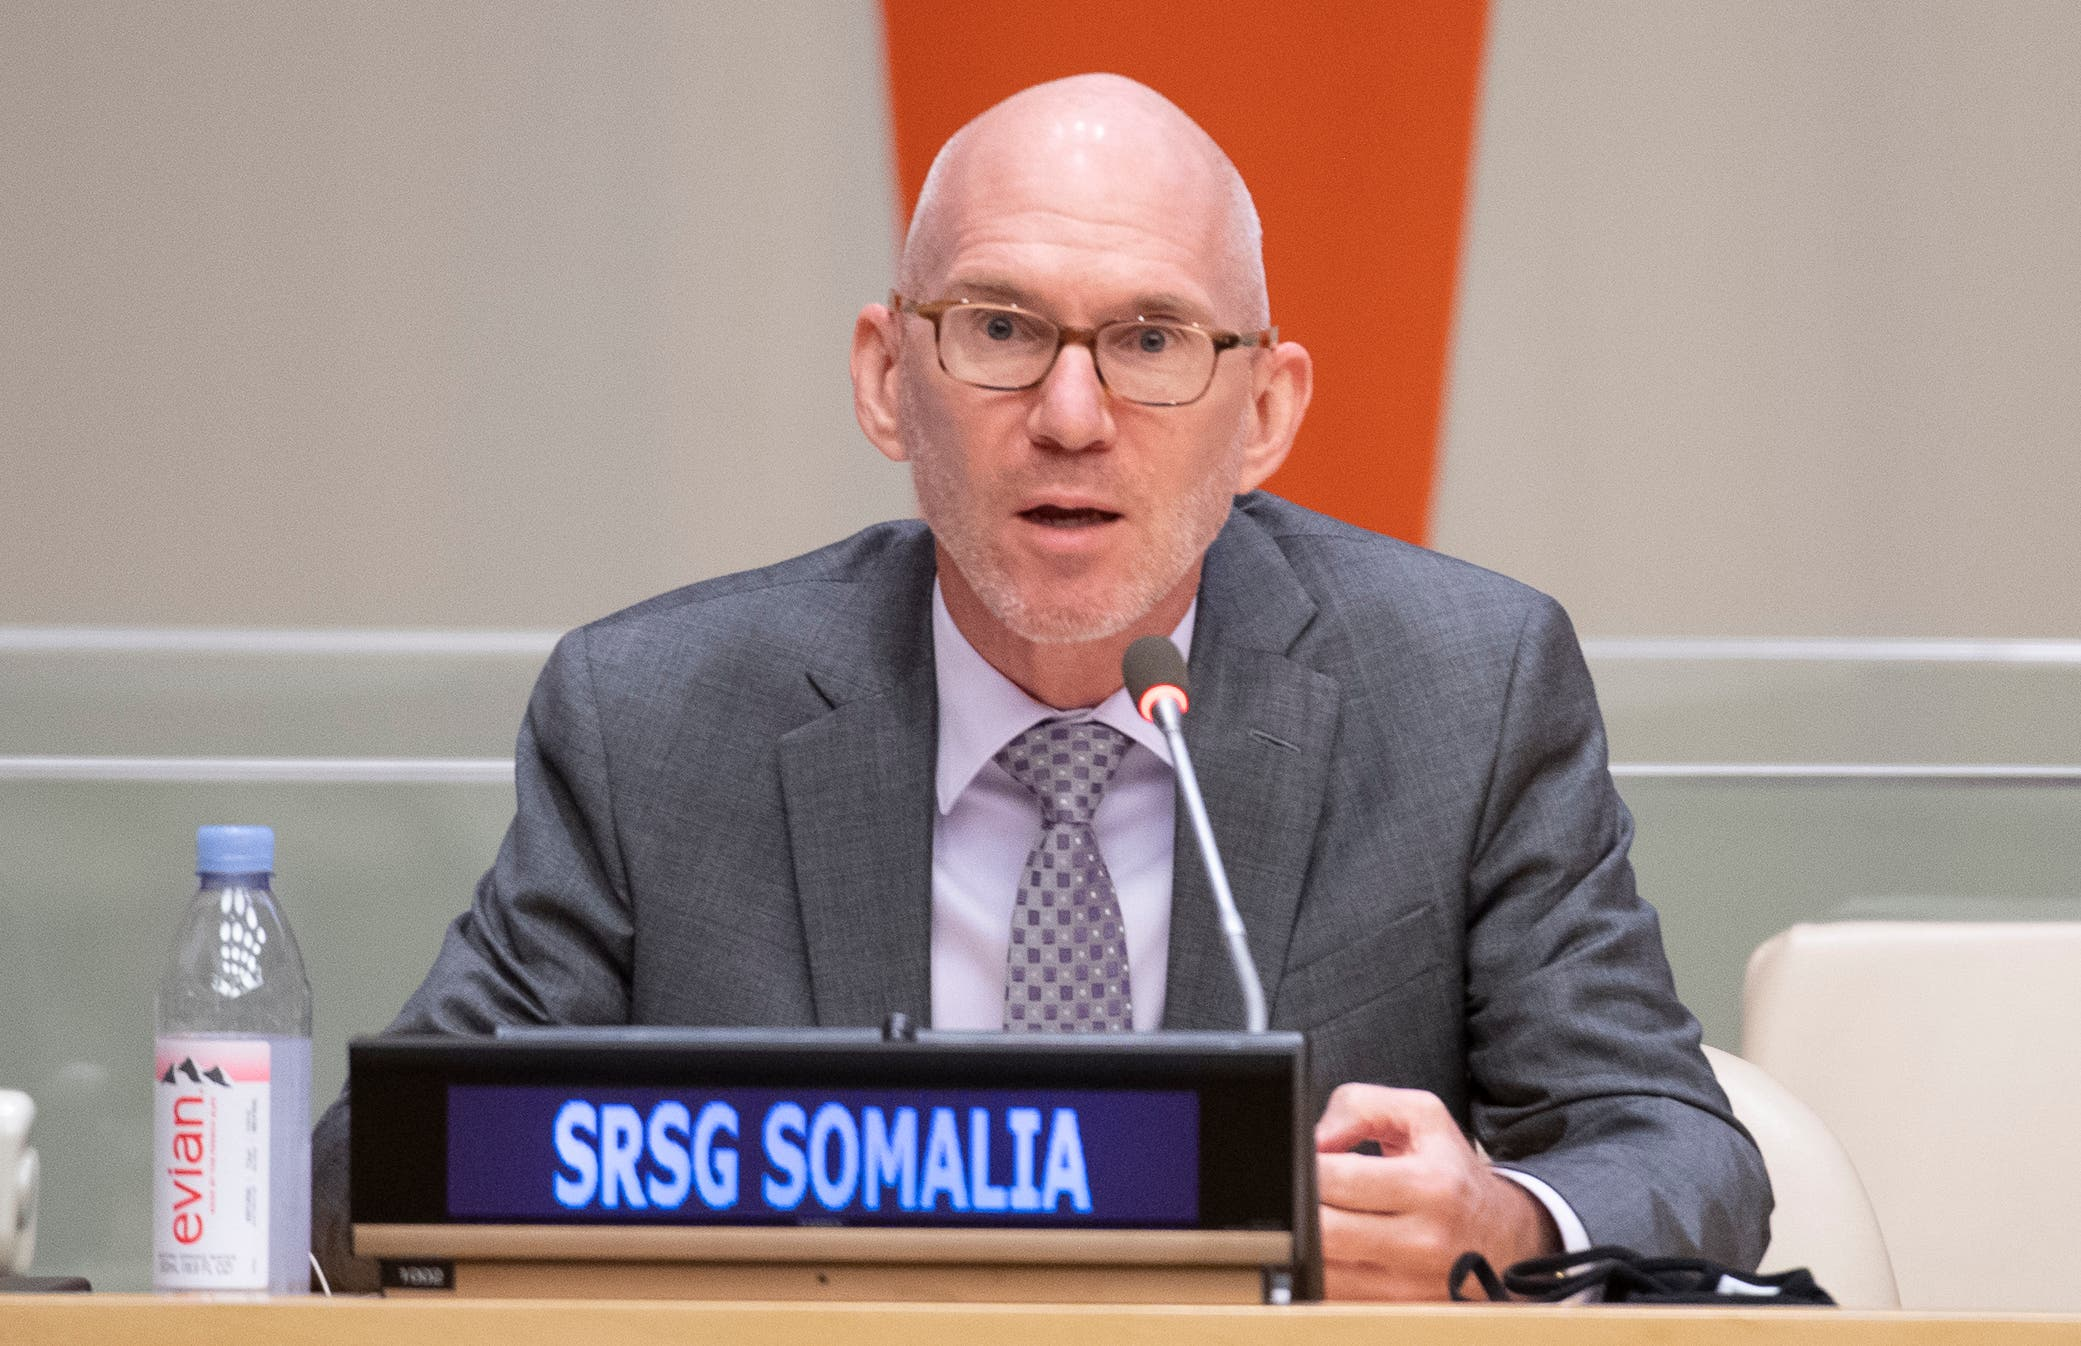 UN75 – An Opportunity for Somalis to Help Shape Global Priorities